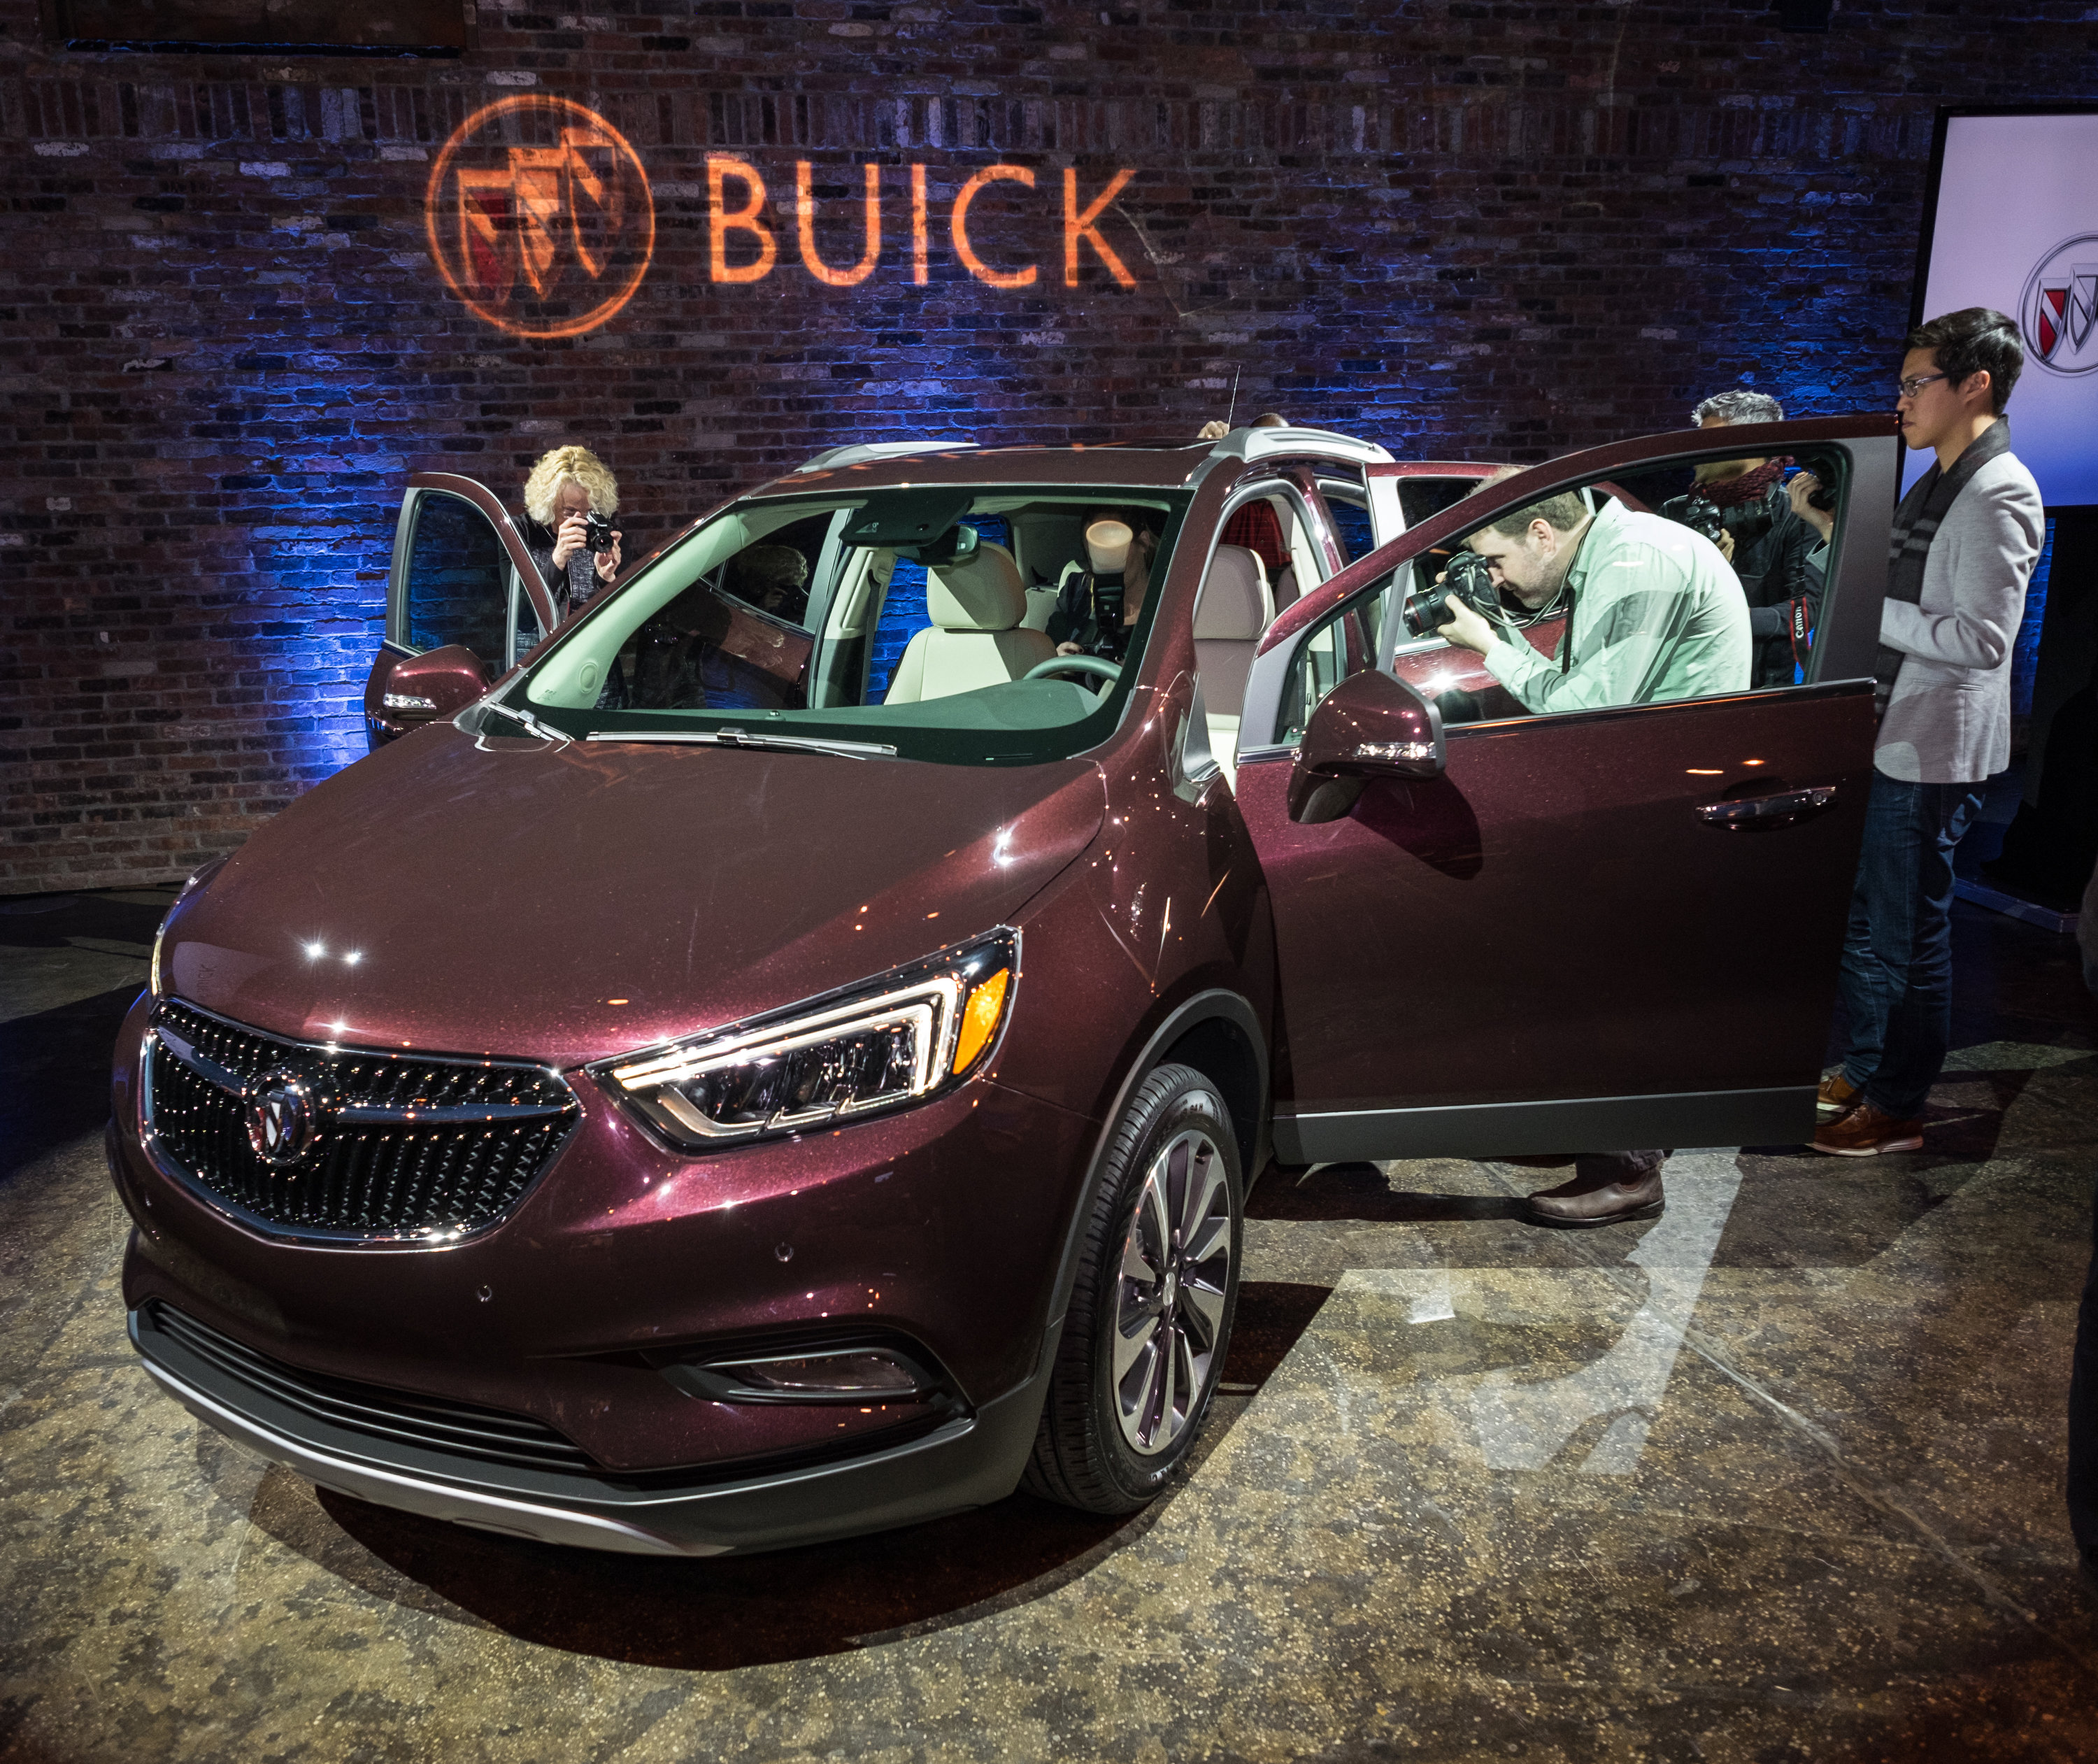 cars where the img gallery com articles encore photo buick news made is